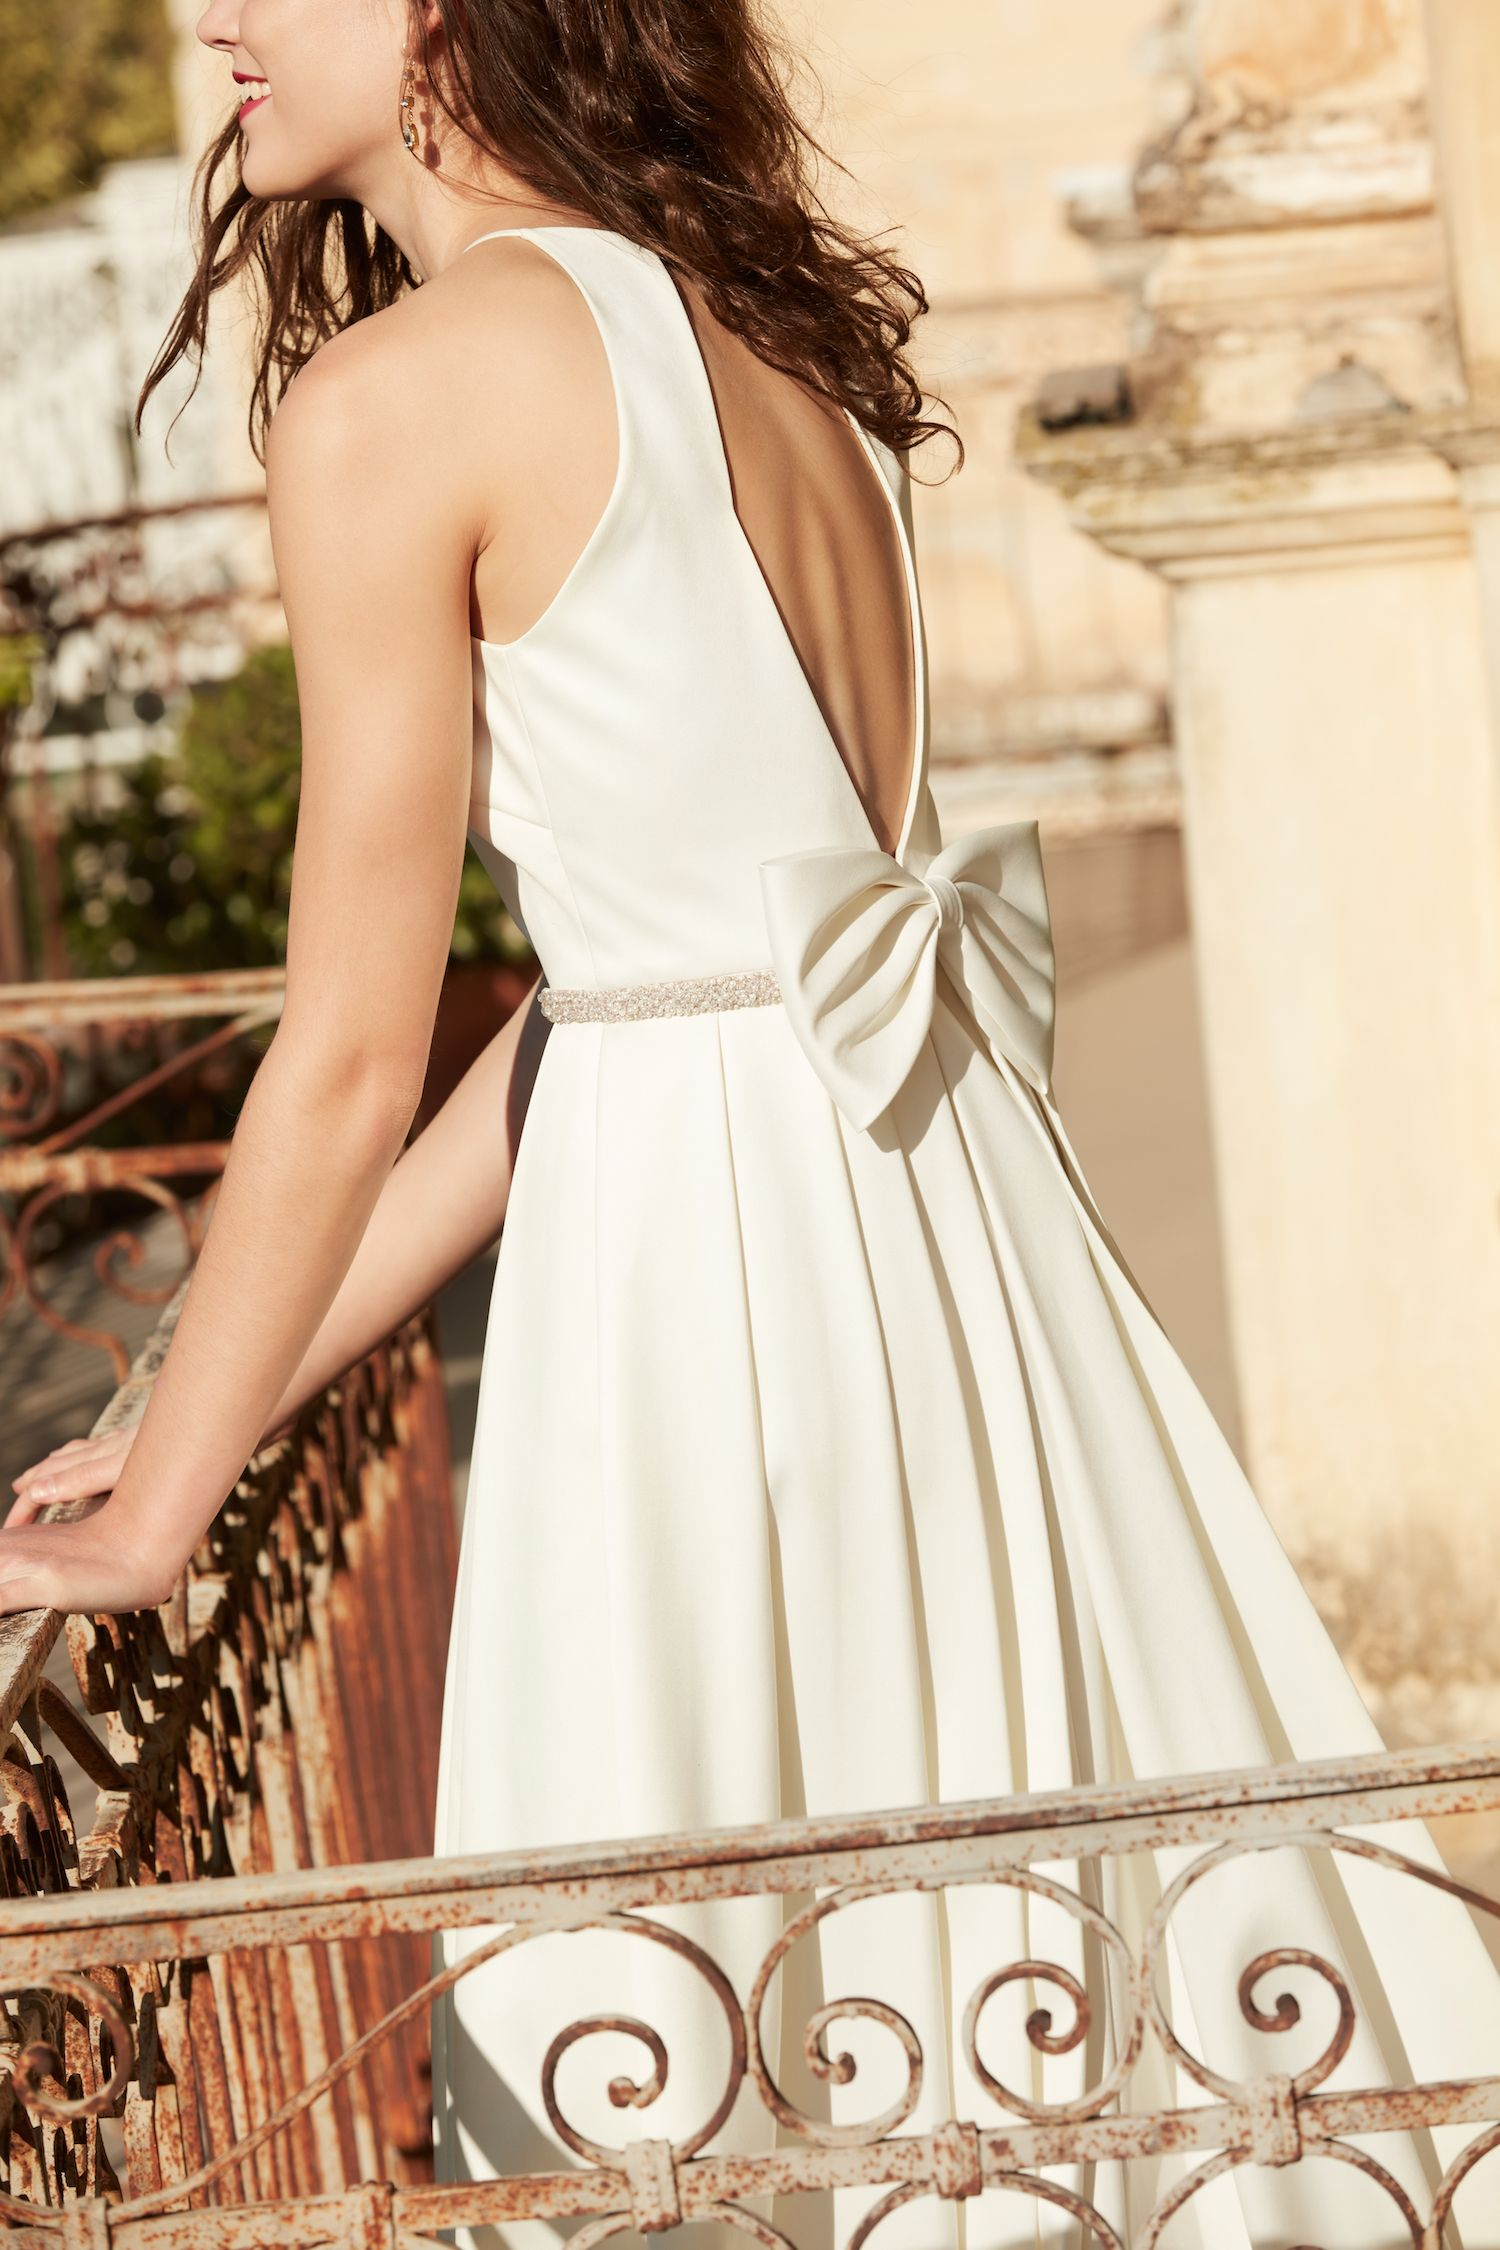 Wedding dress with bow on back  BHLDN Spring  Bridal Collection  Wedding Dresses  Pinterest